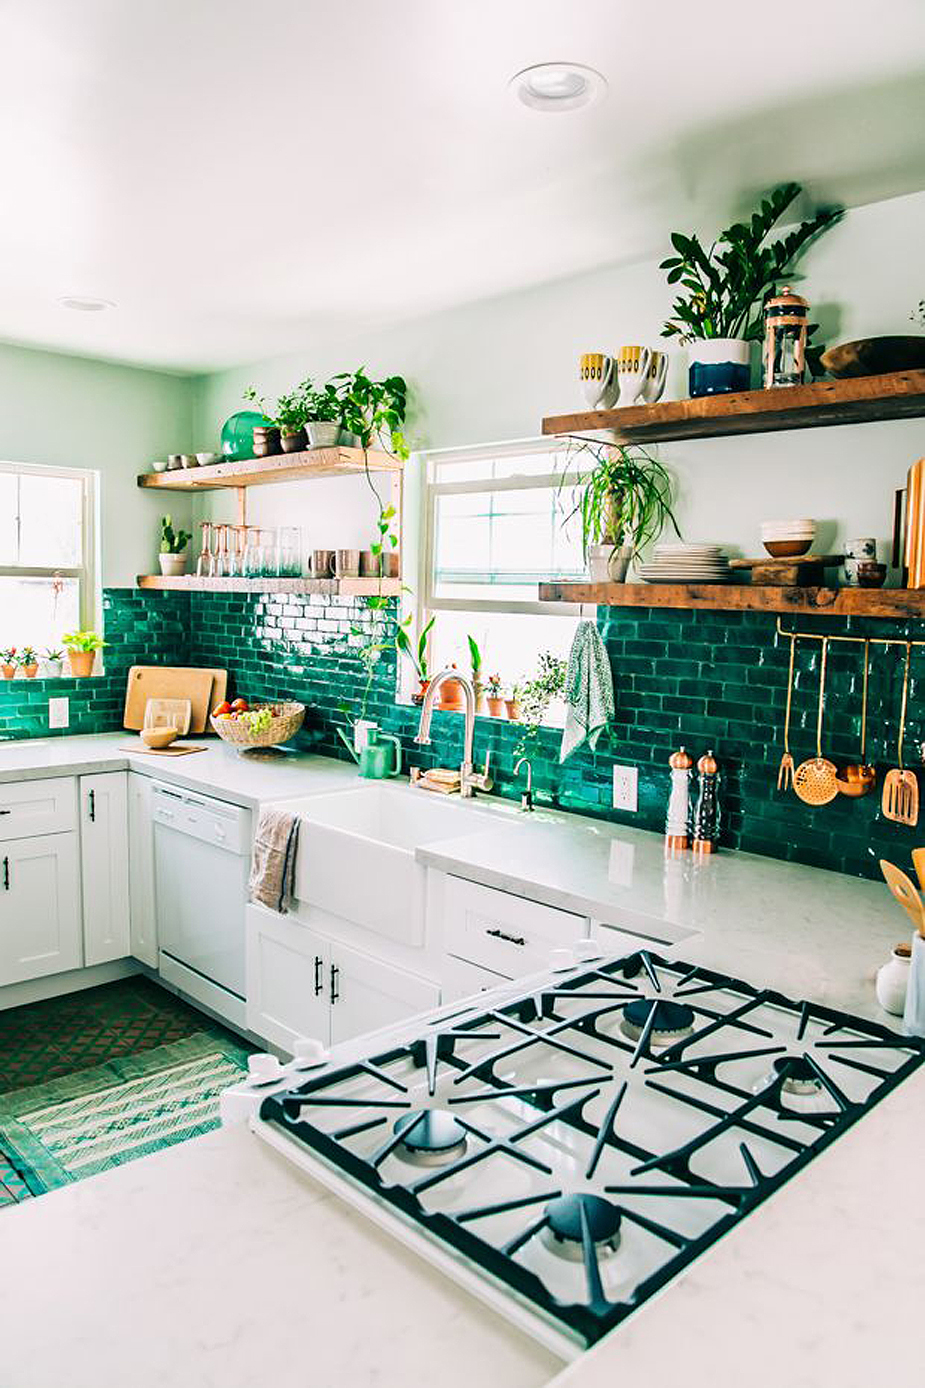 What s Hot on Pinterest  6 Boho Home Decor What s Hot on Pinterest  Stunning Boho Home Decor boho home decor What s  Hot on Pinterest